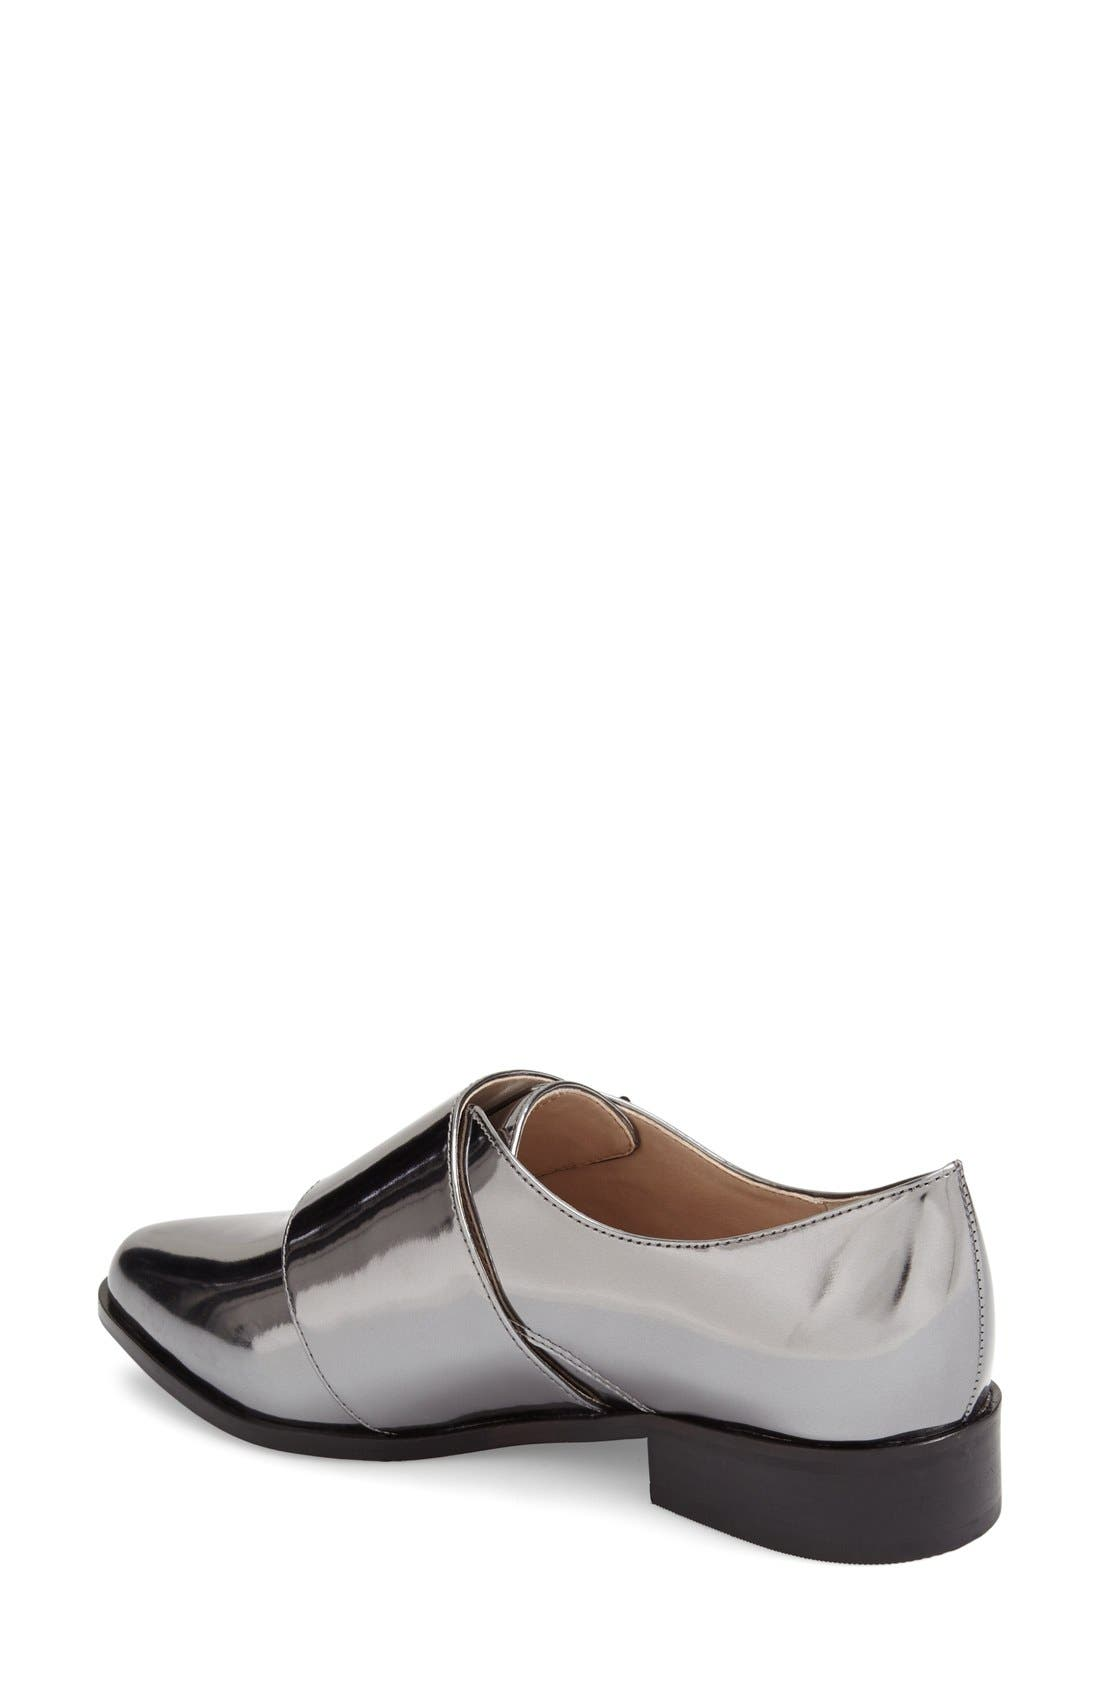 Alternate Image 2  - French Connection 'Lorinda' Monk Strap Loafer (Women)